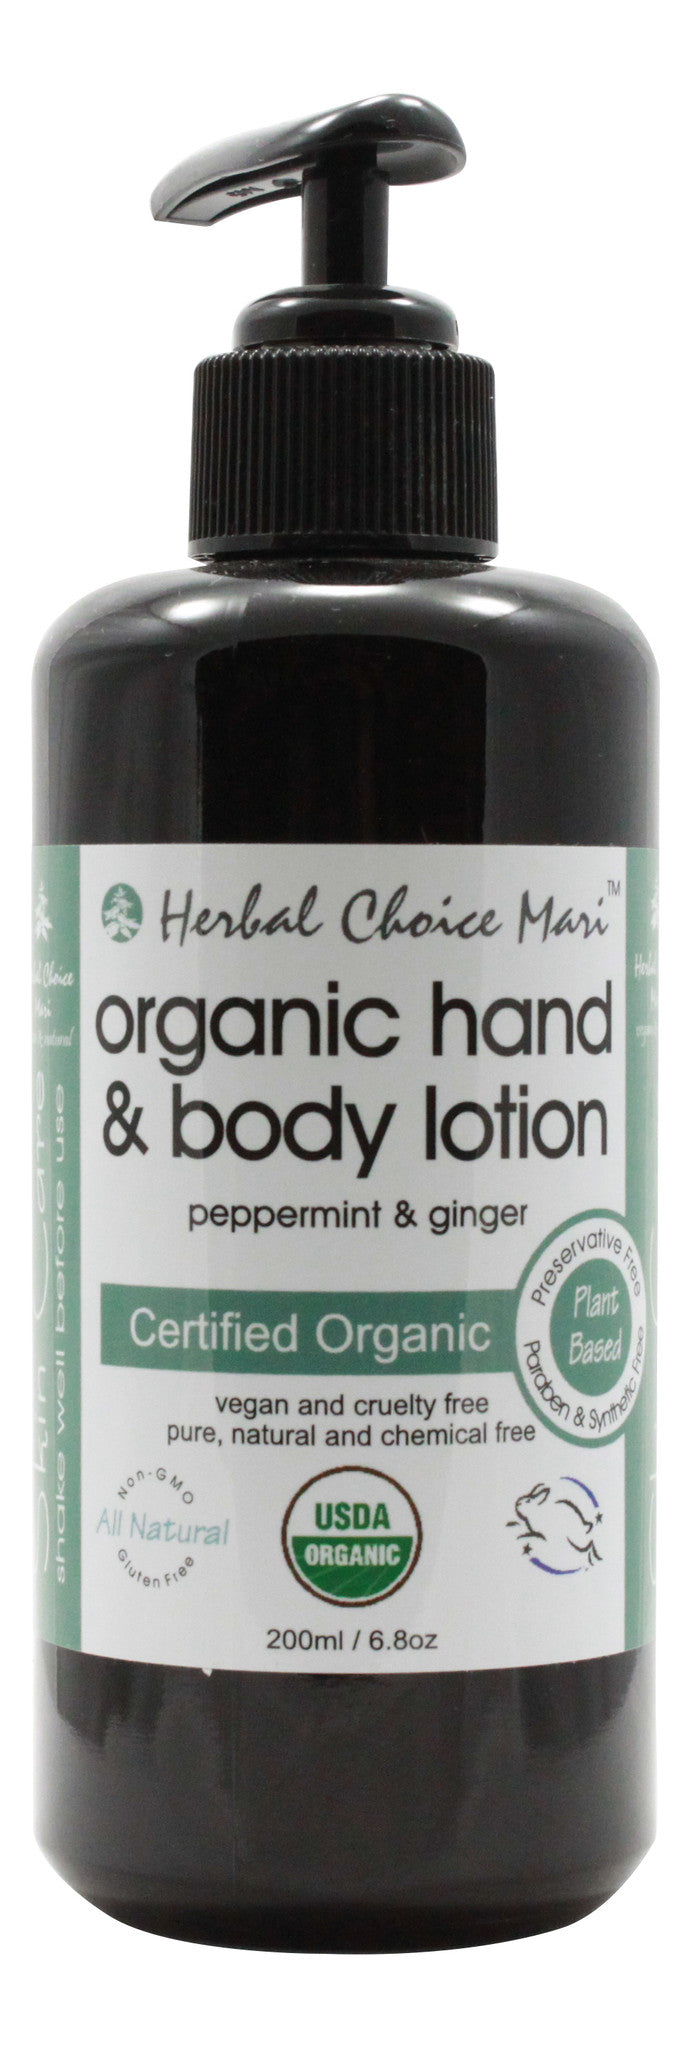 Organic Hand & Body Lotion - Peppermint & Ginger - 6.8 oz - Front